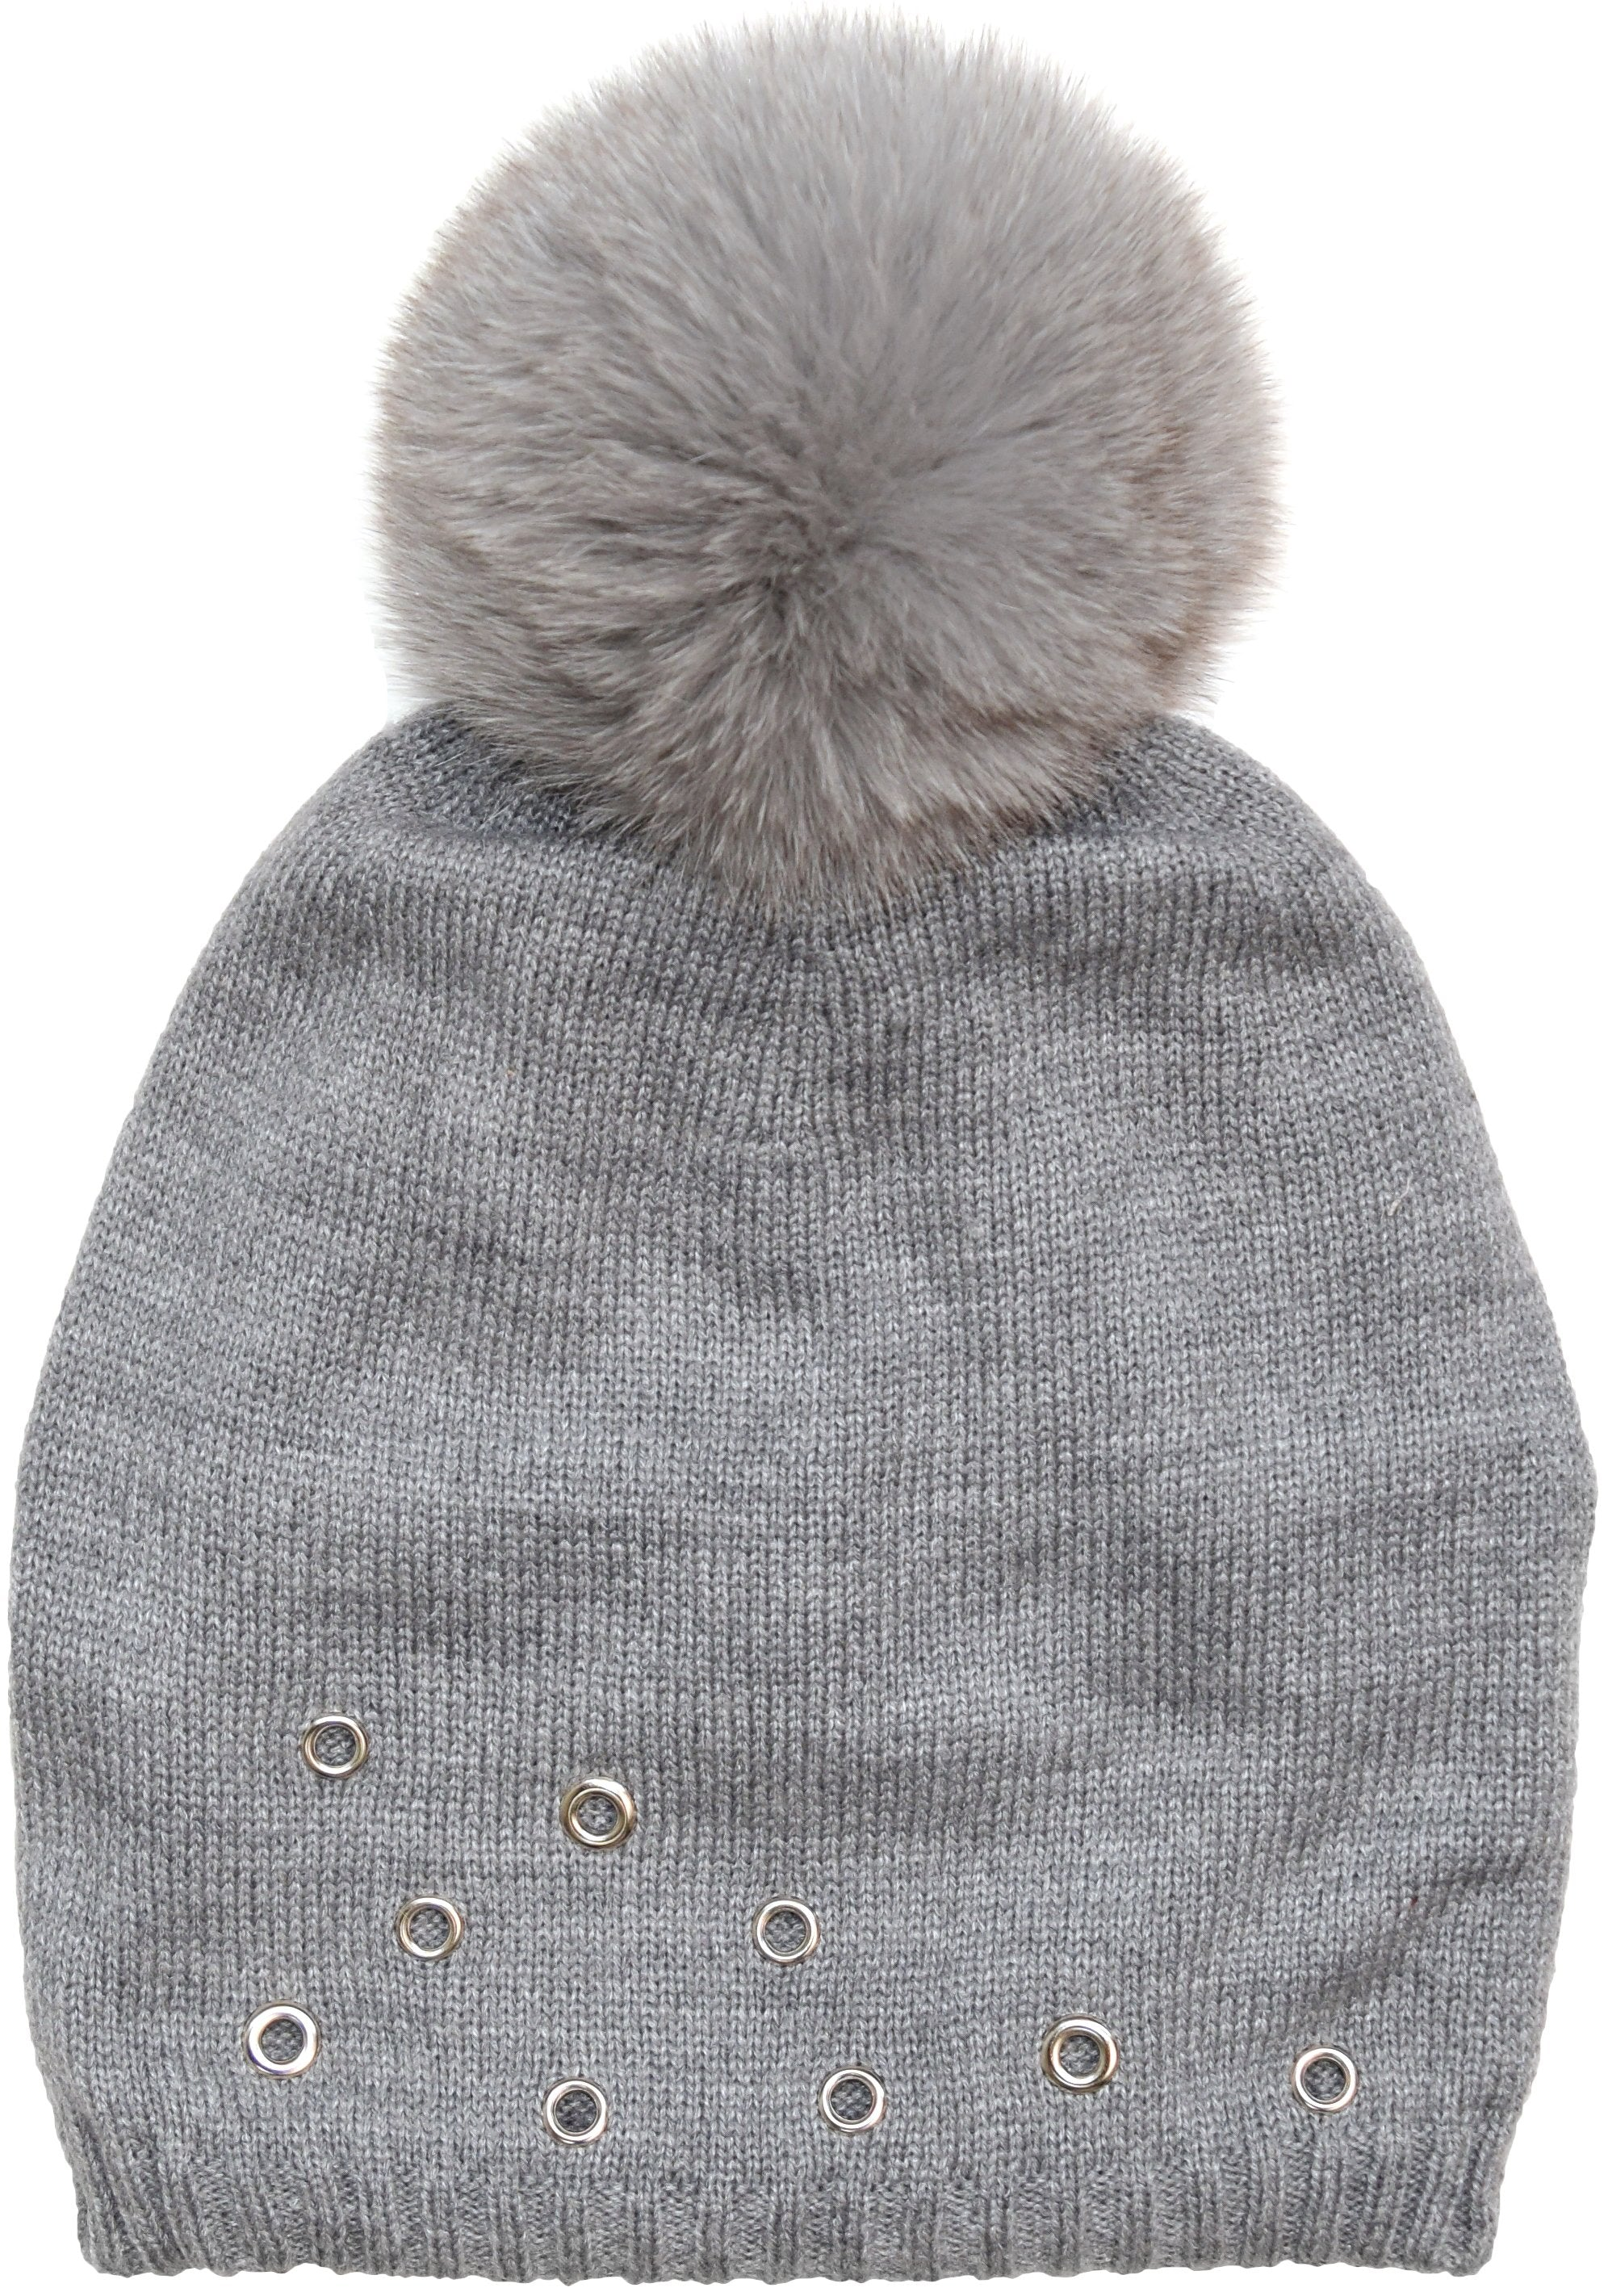 Knit Hat with Real Fur Pom Embellished with Grommets